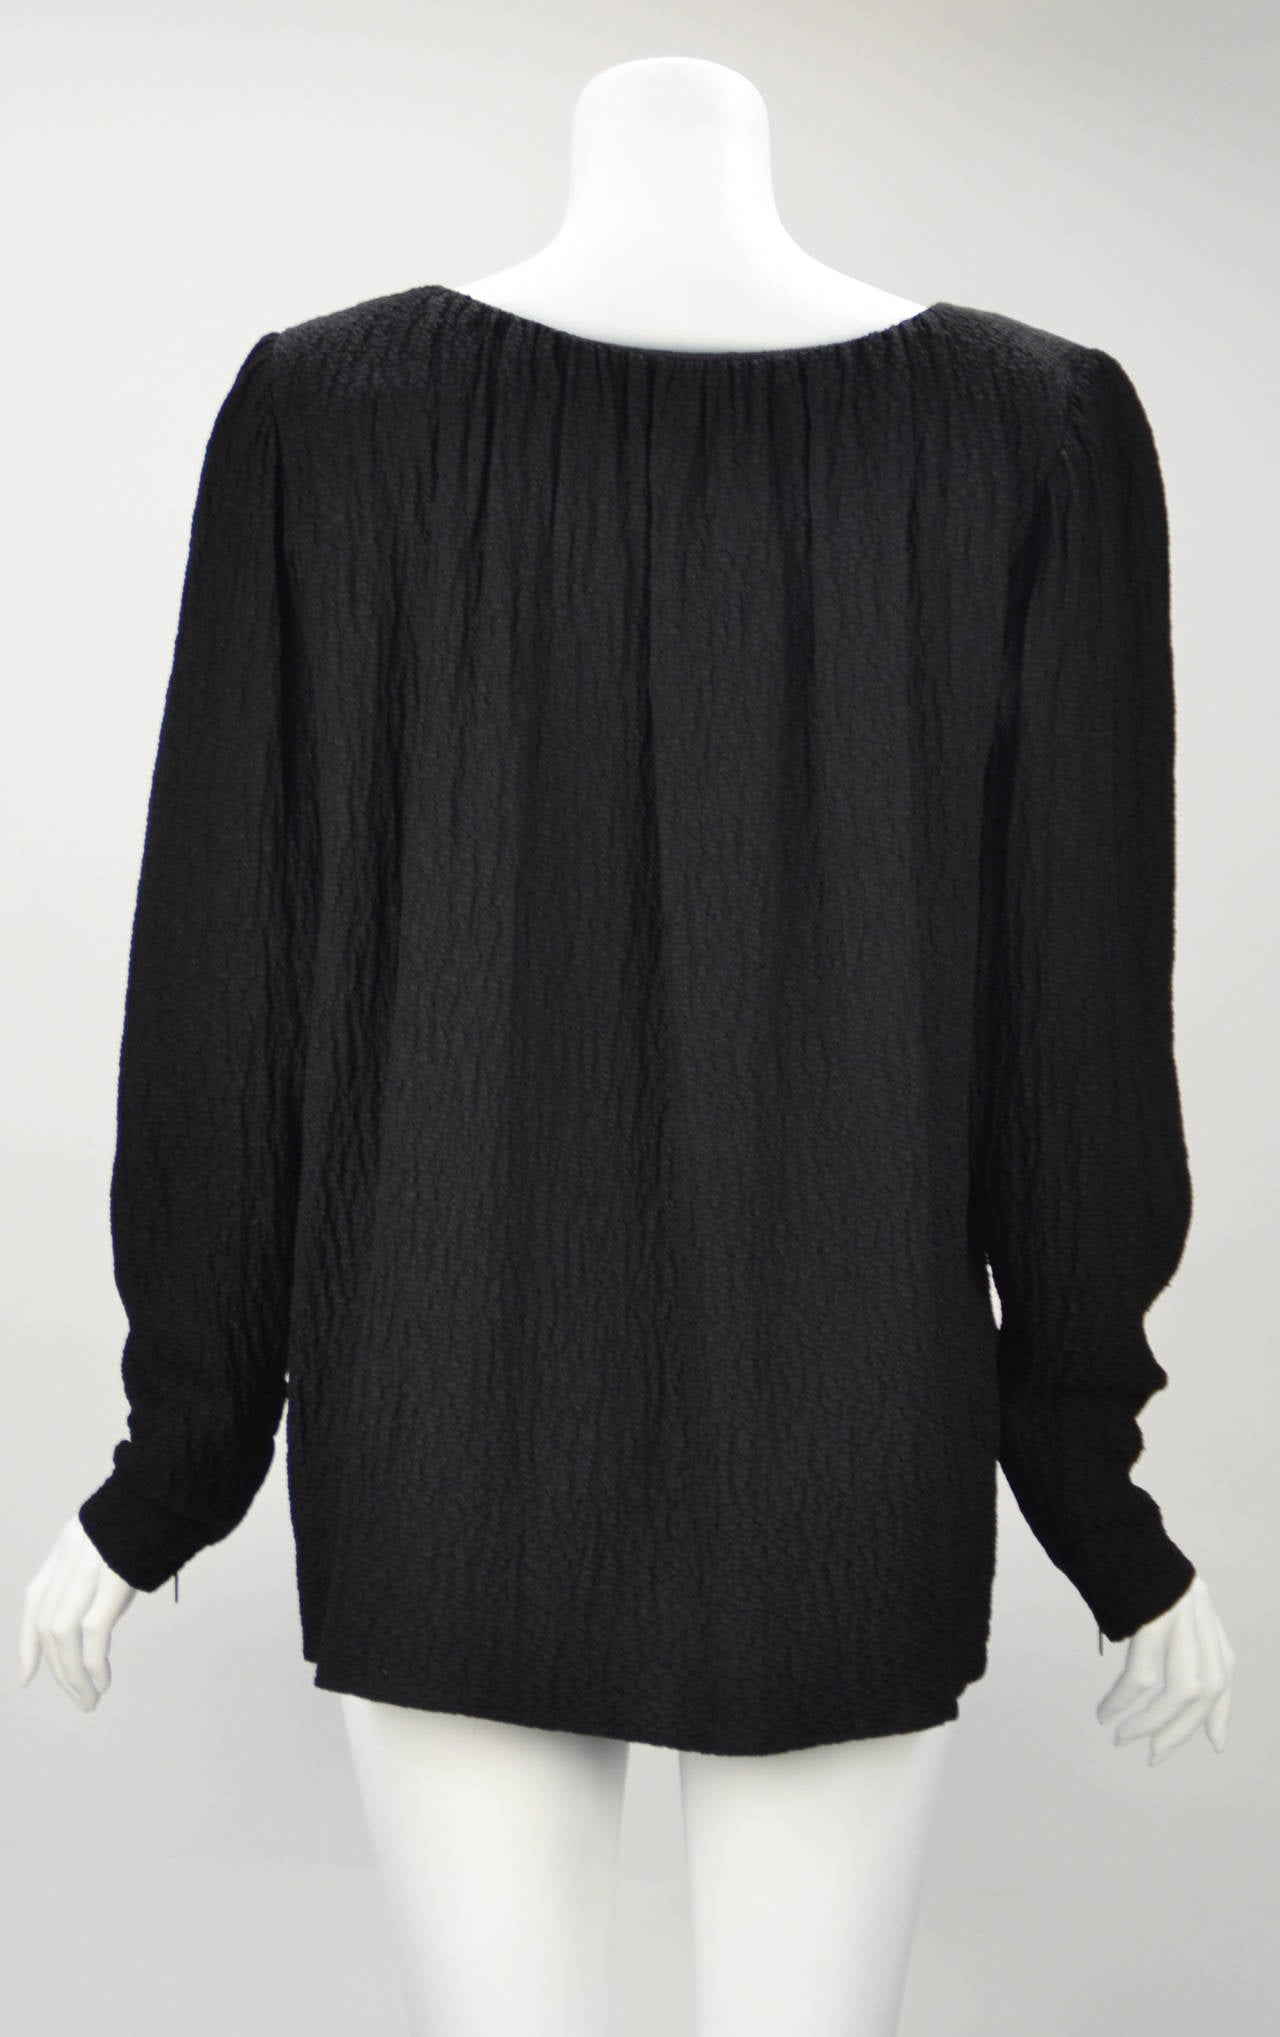 1970s Yves Saint Laurent Black Blouse 2